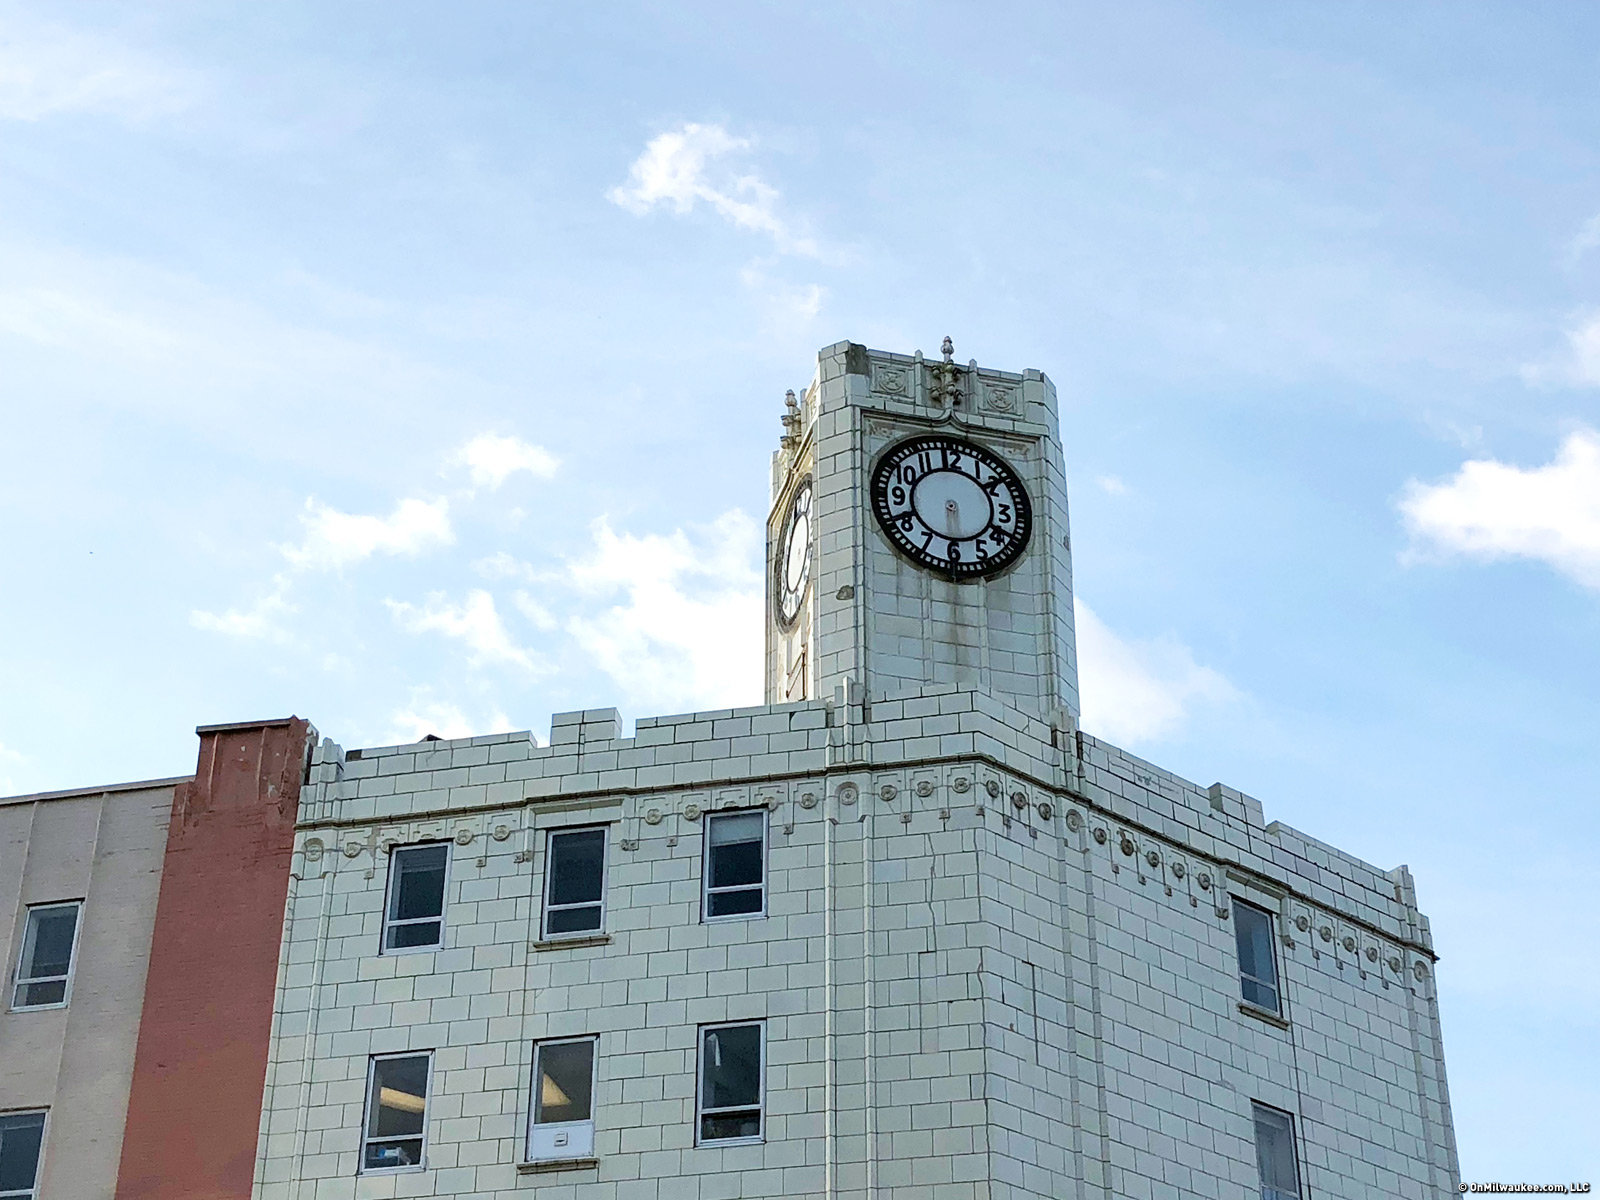 Urban spelunking: The East Side Clock Tower Building